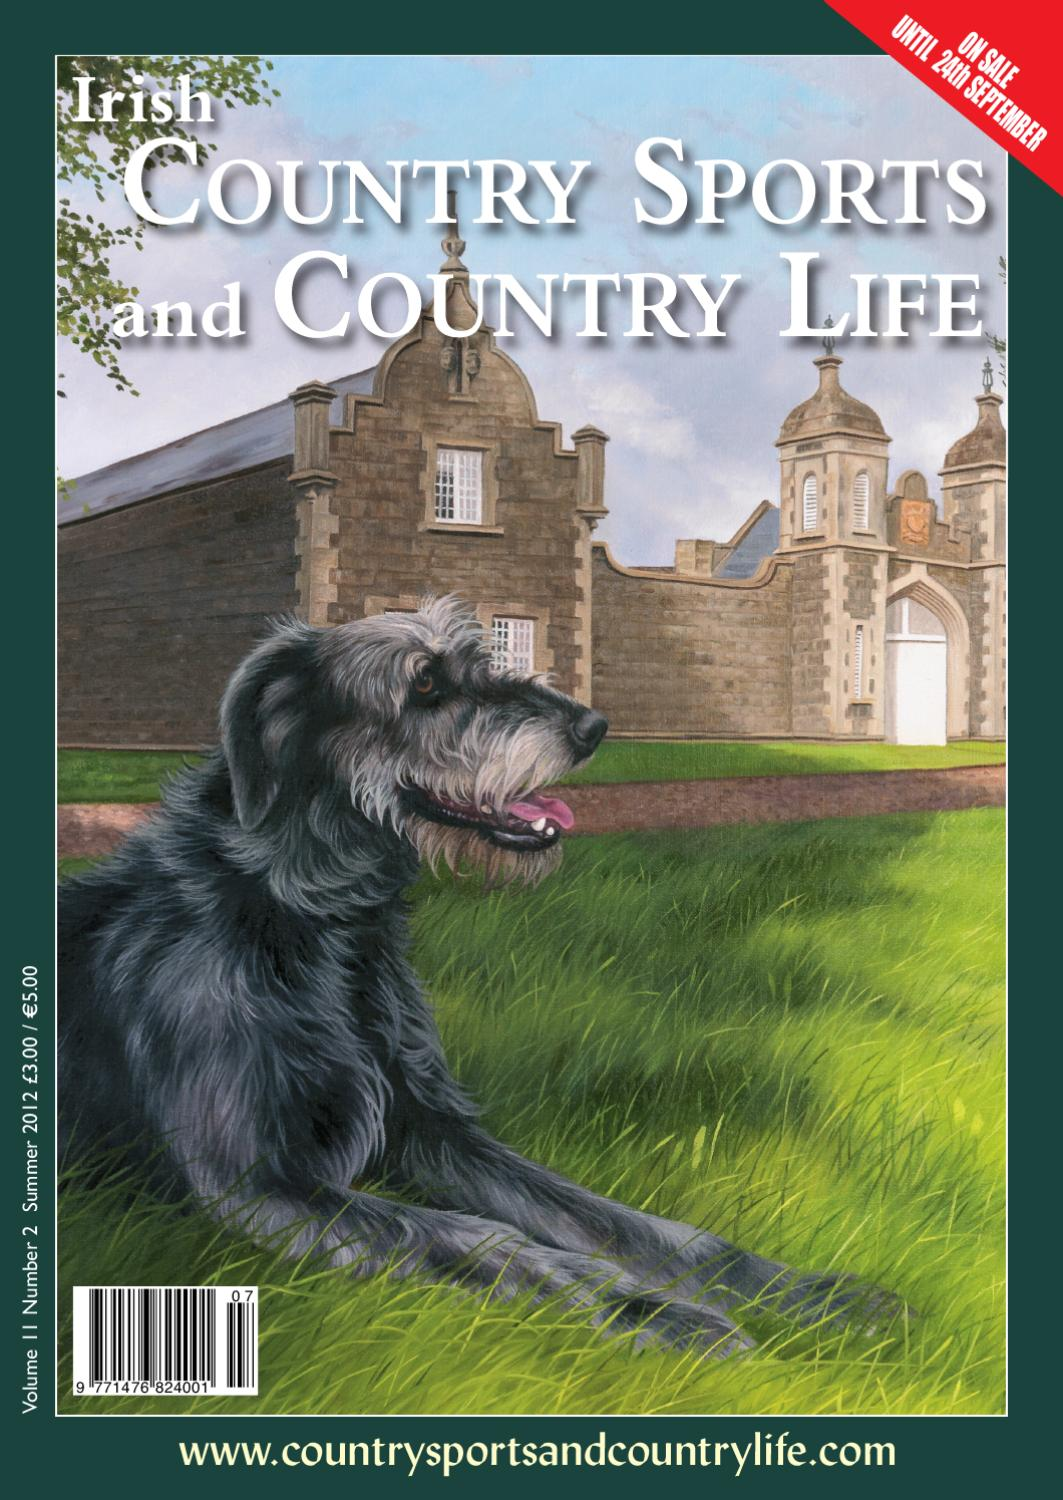 Irish Country Sports and Country Life Summer 2012 by Bluegator